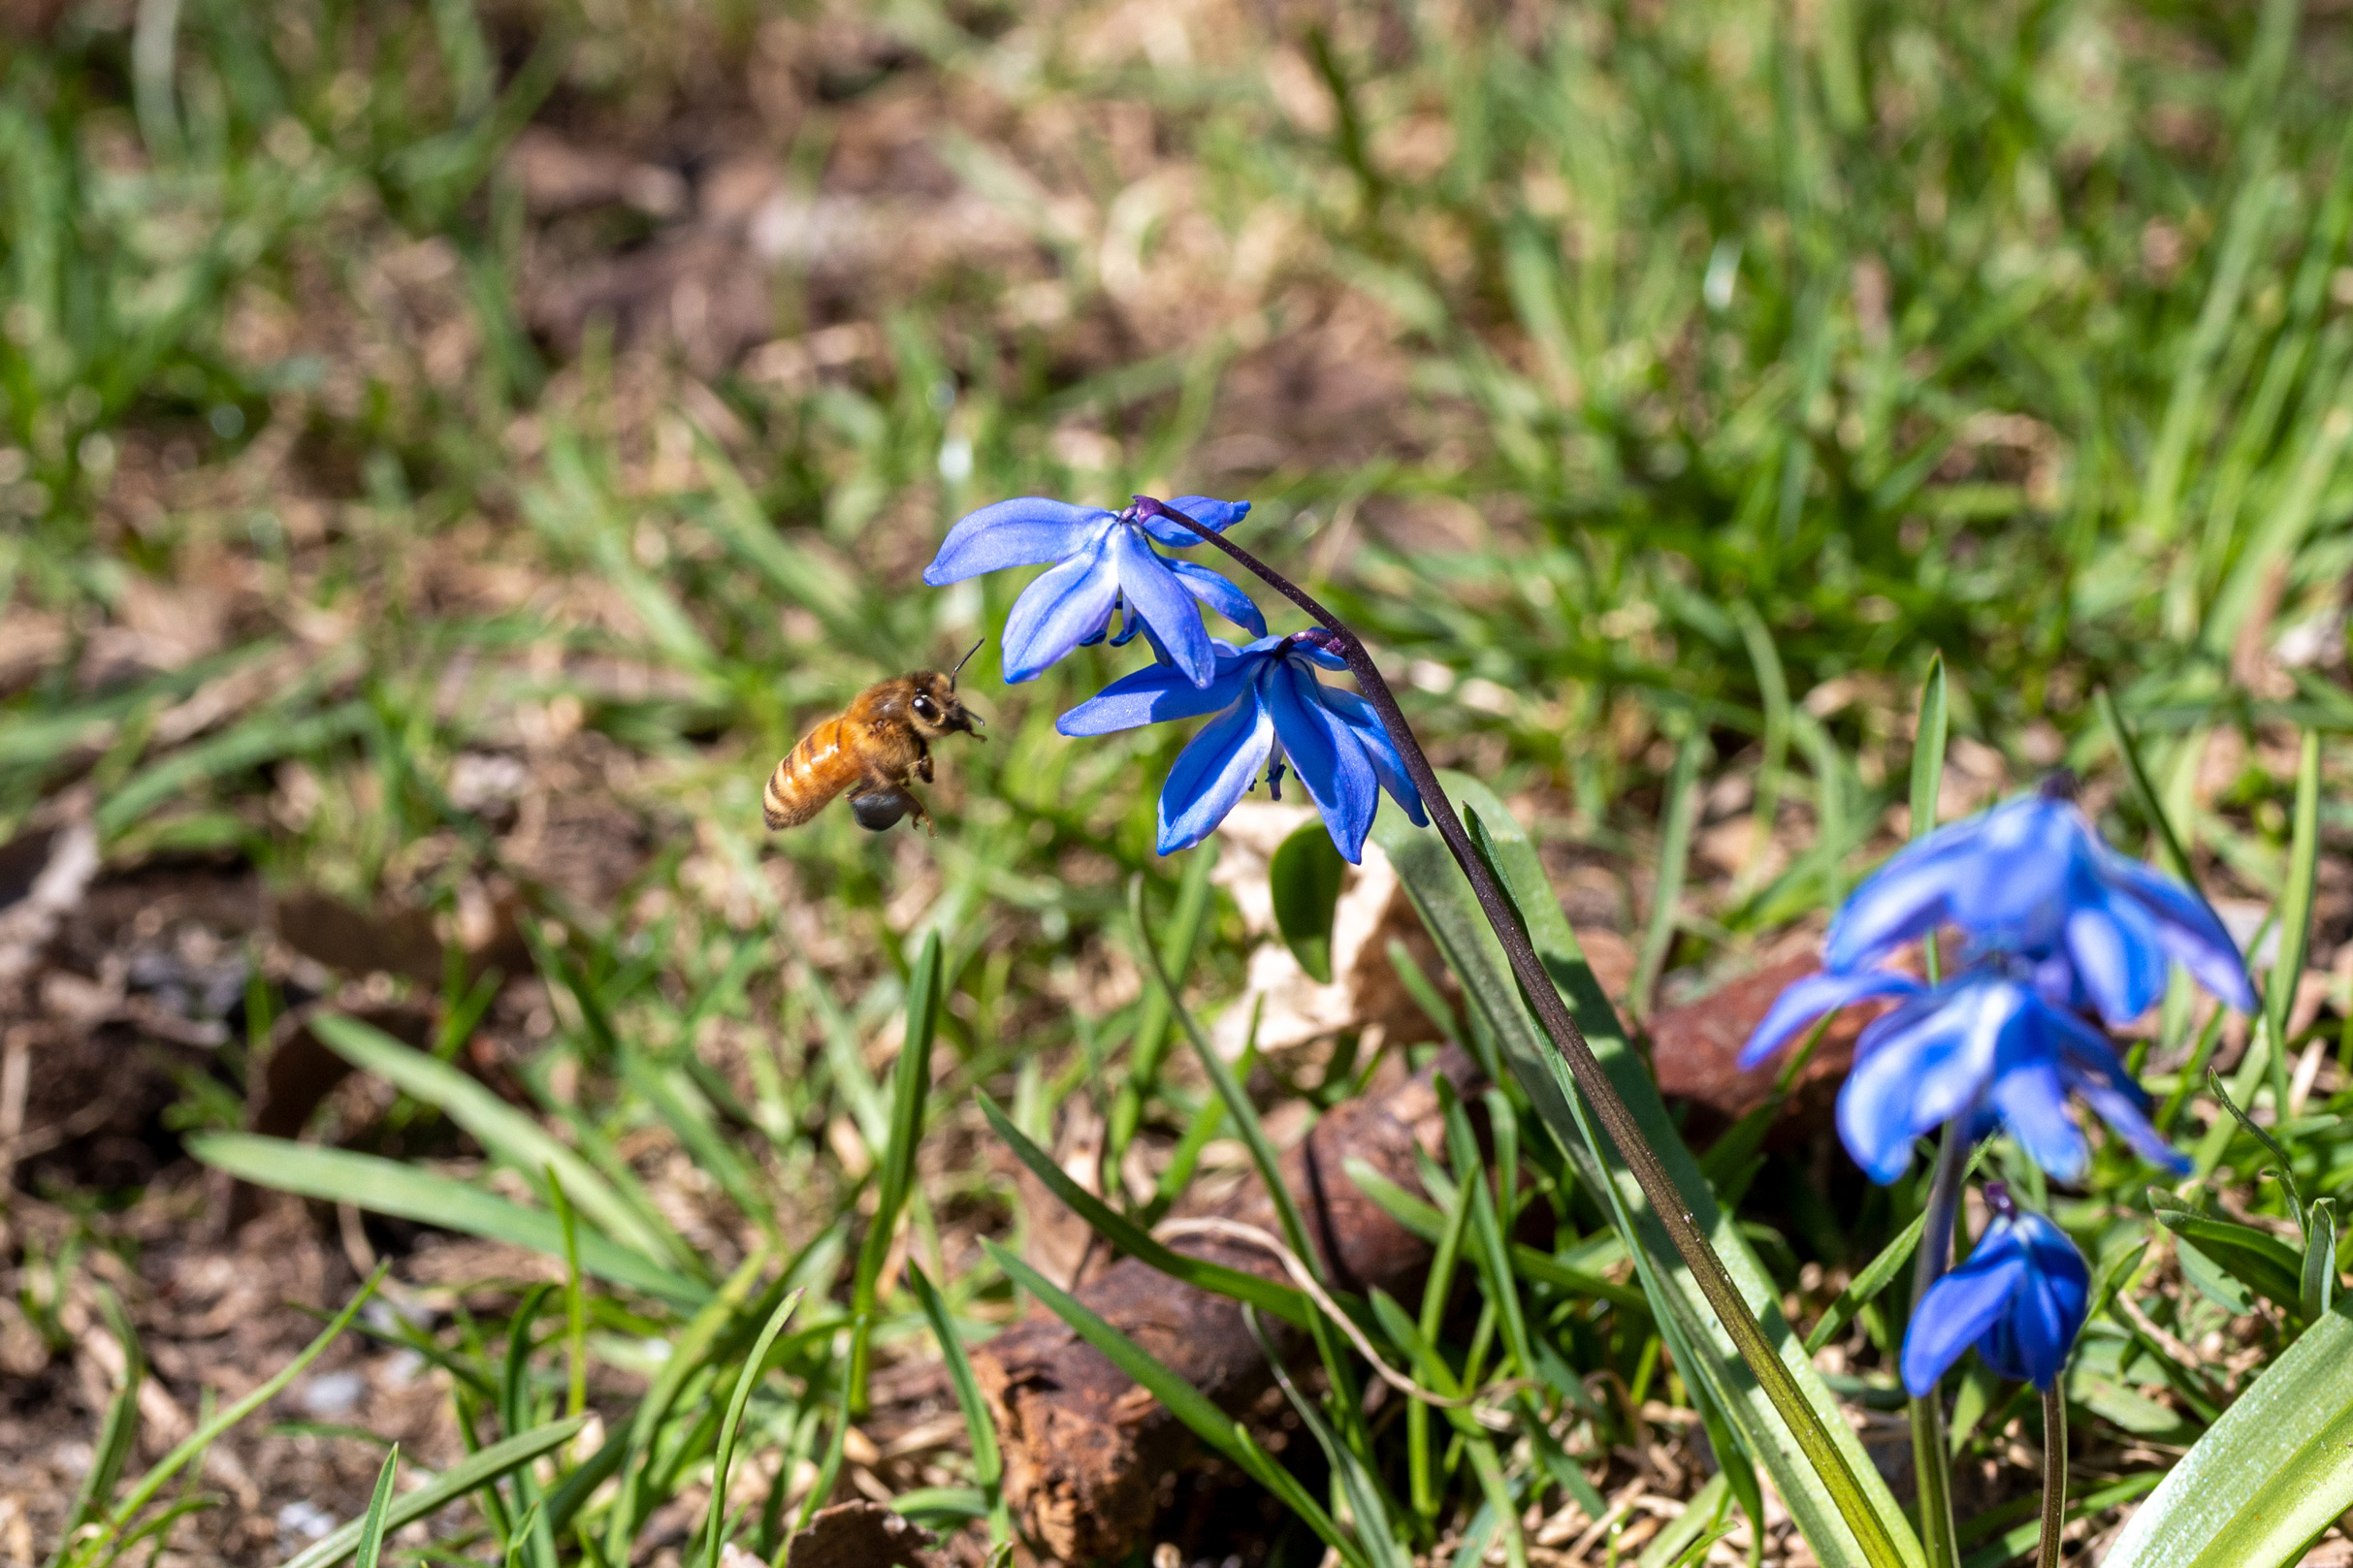 Bee hovering in front of blue flower